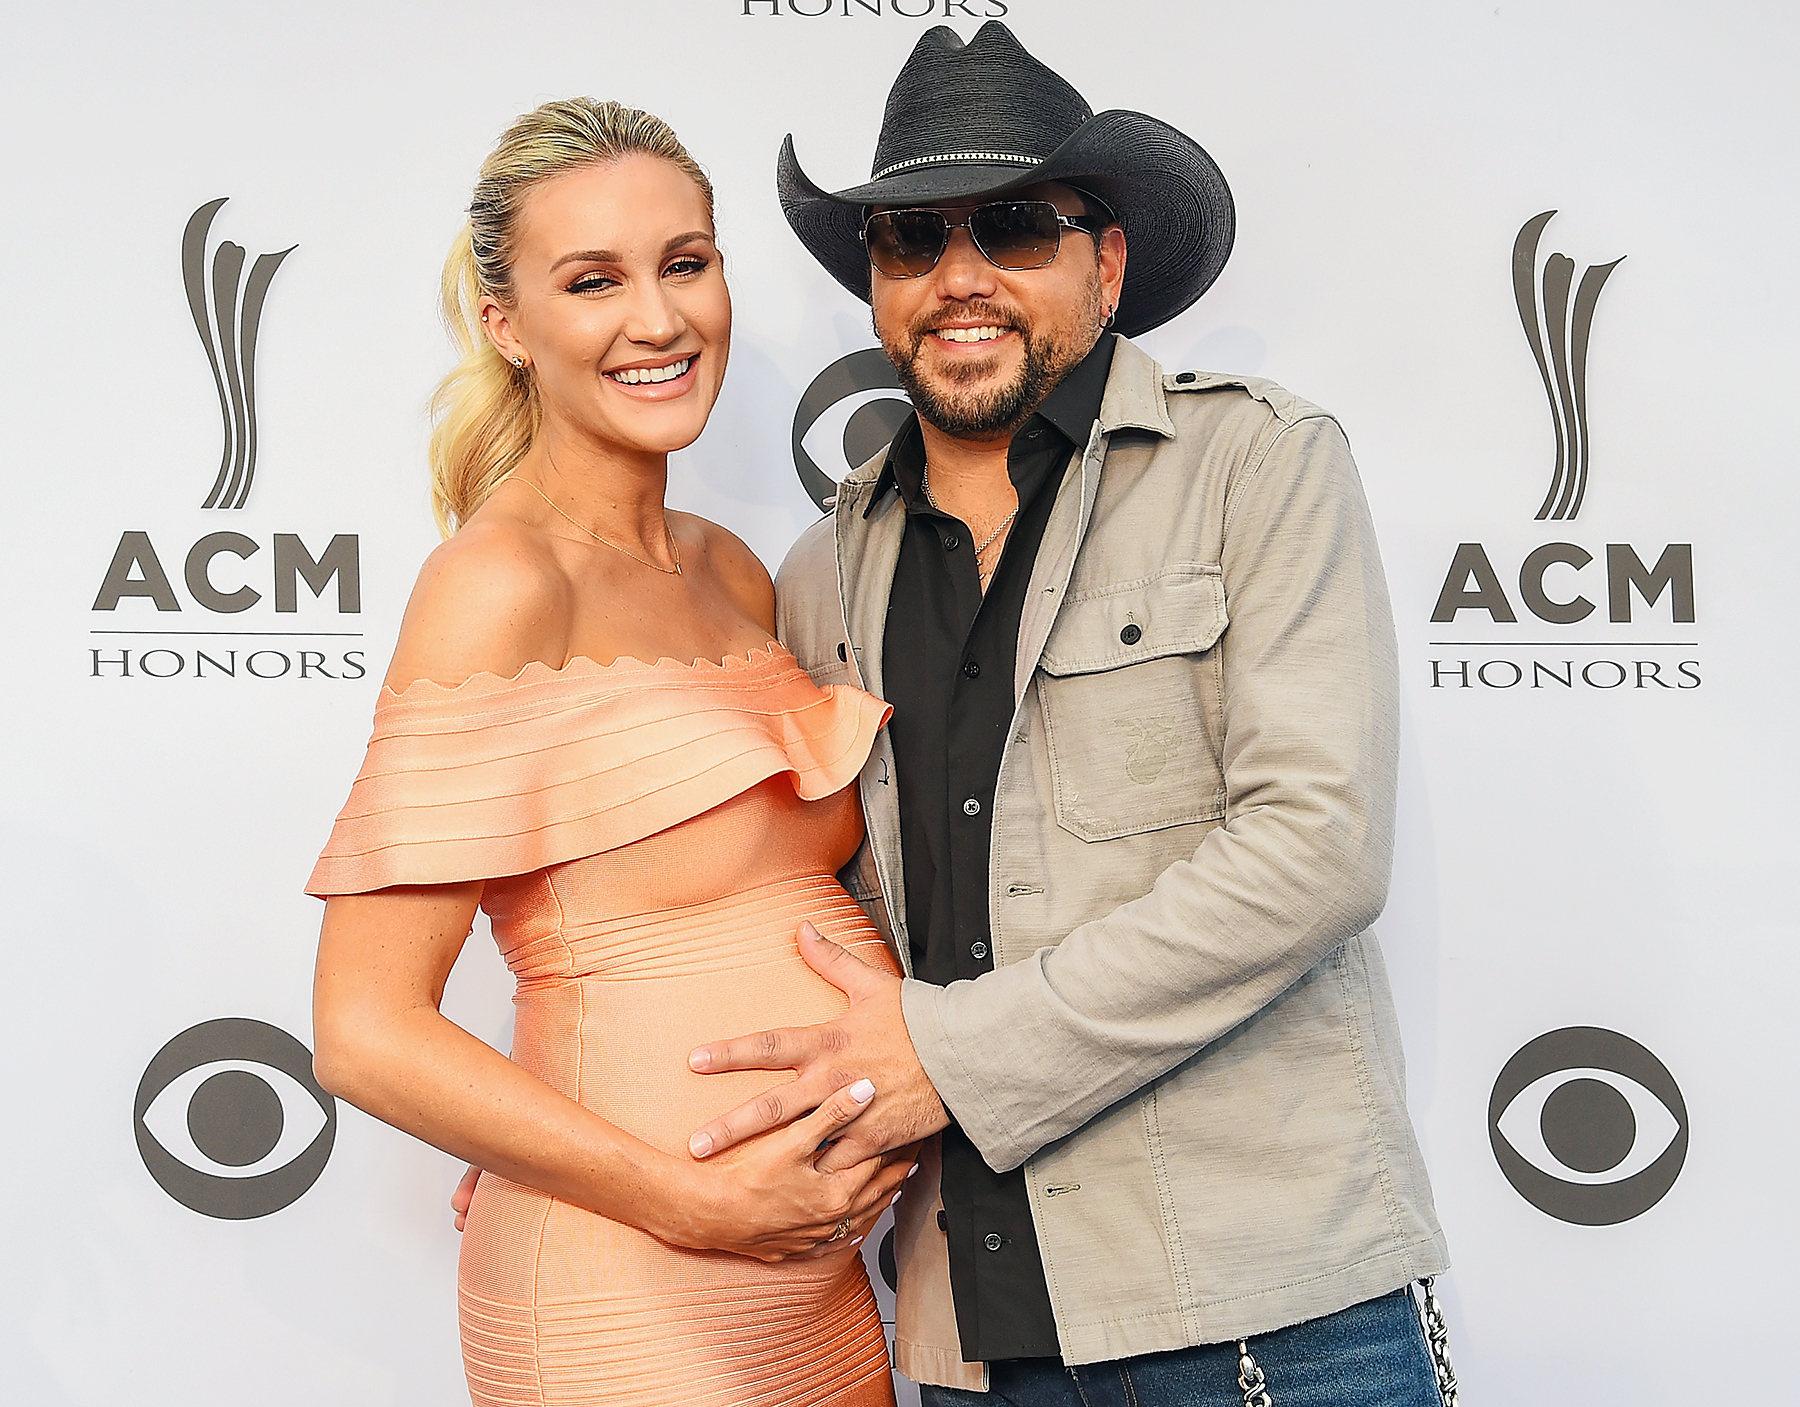 Jason Aldean s Wife Brittany Kerr Shows f Her Baby Bump at ACM